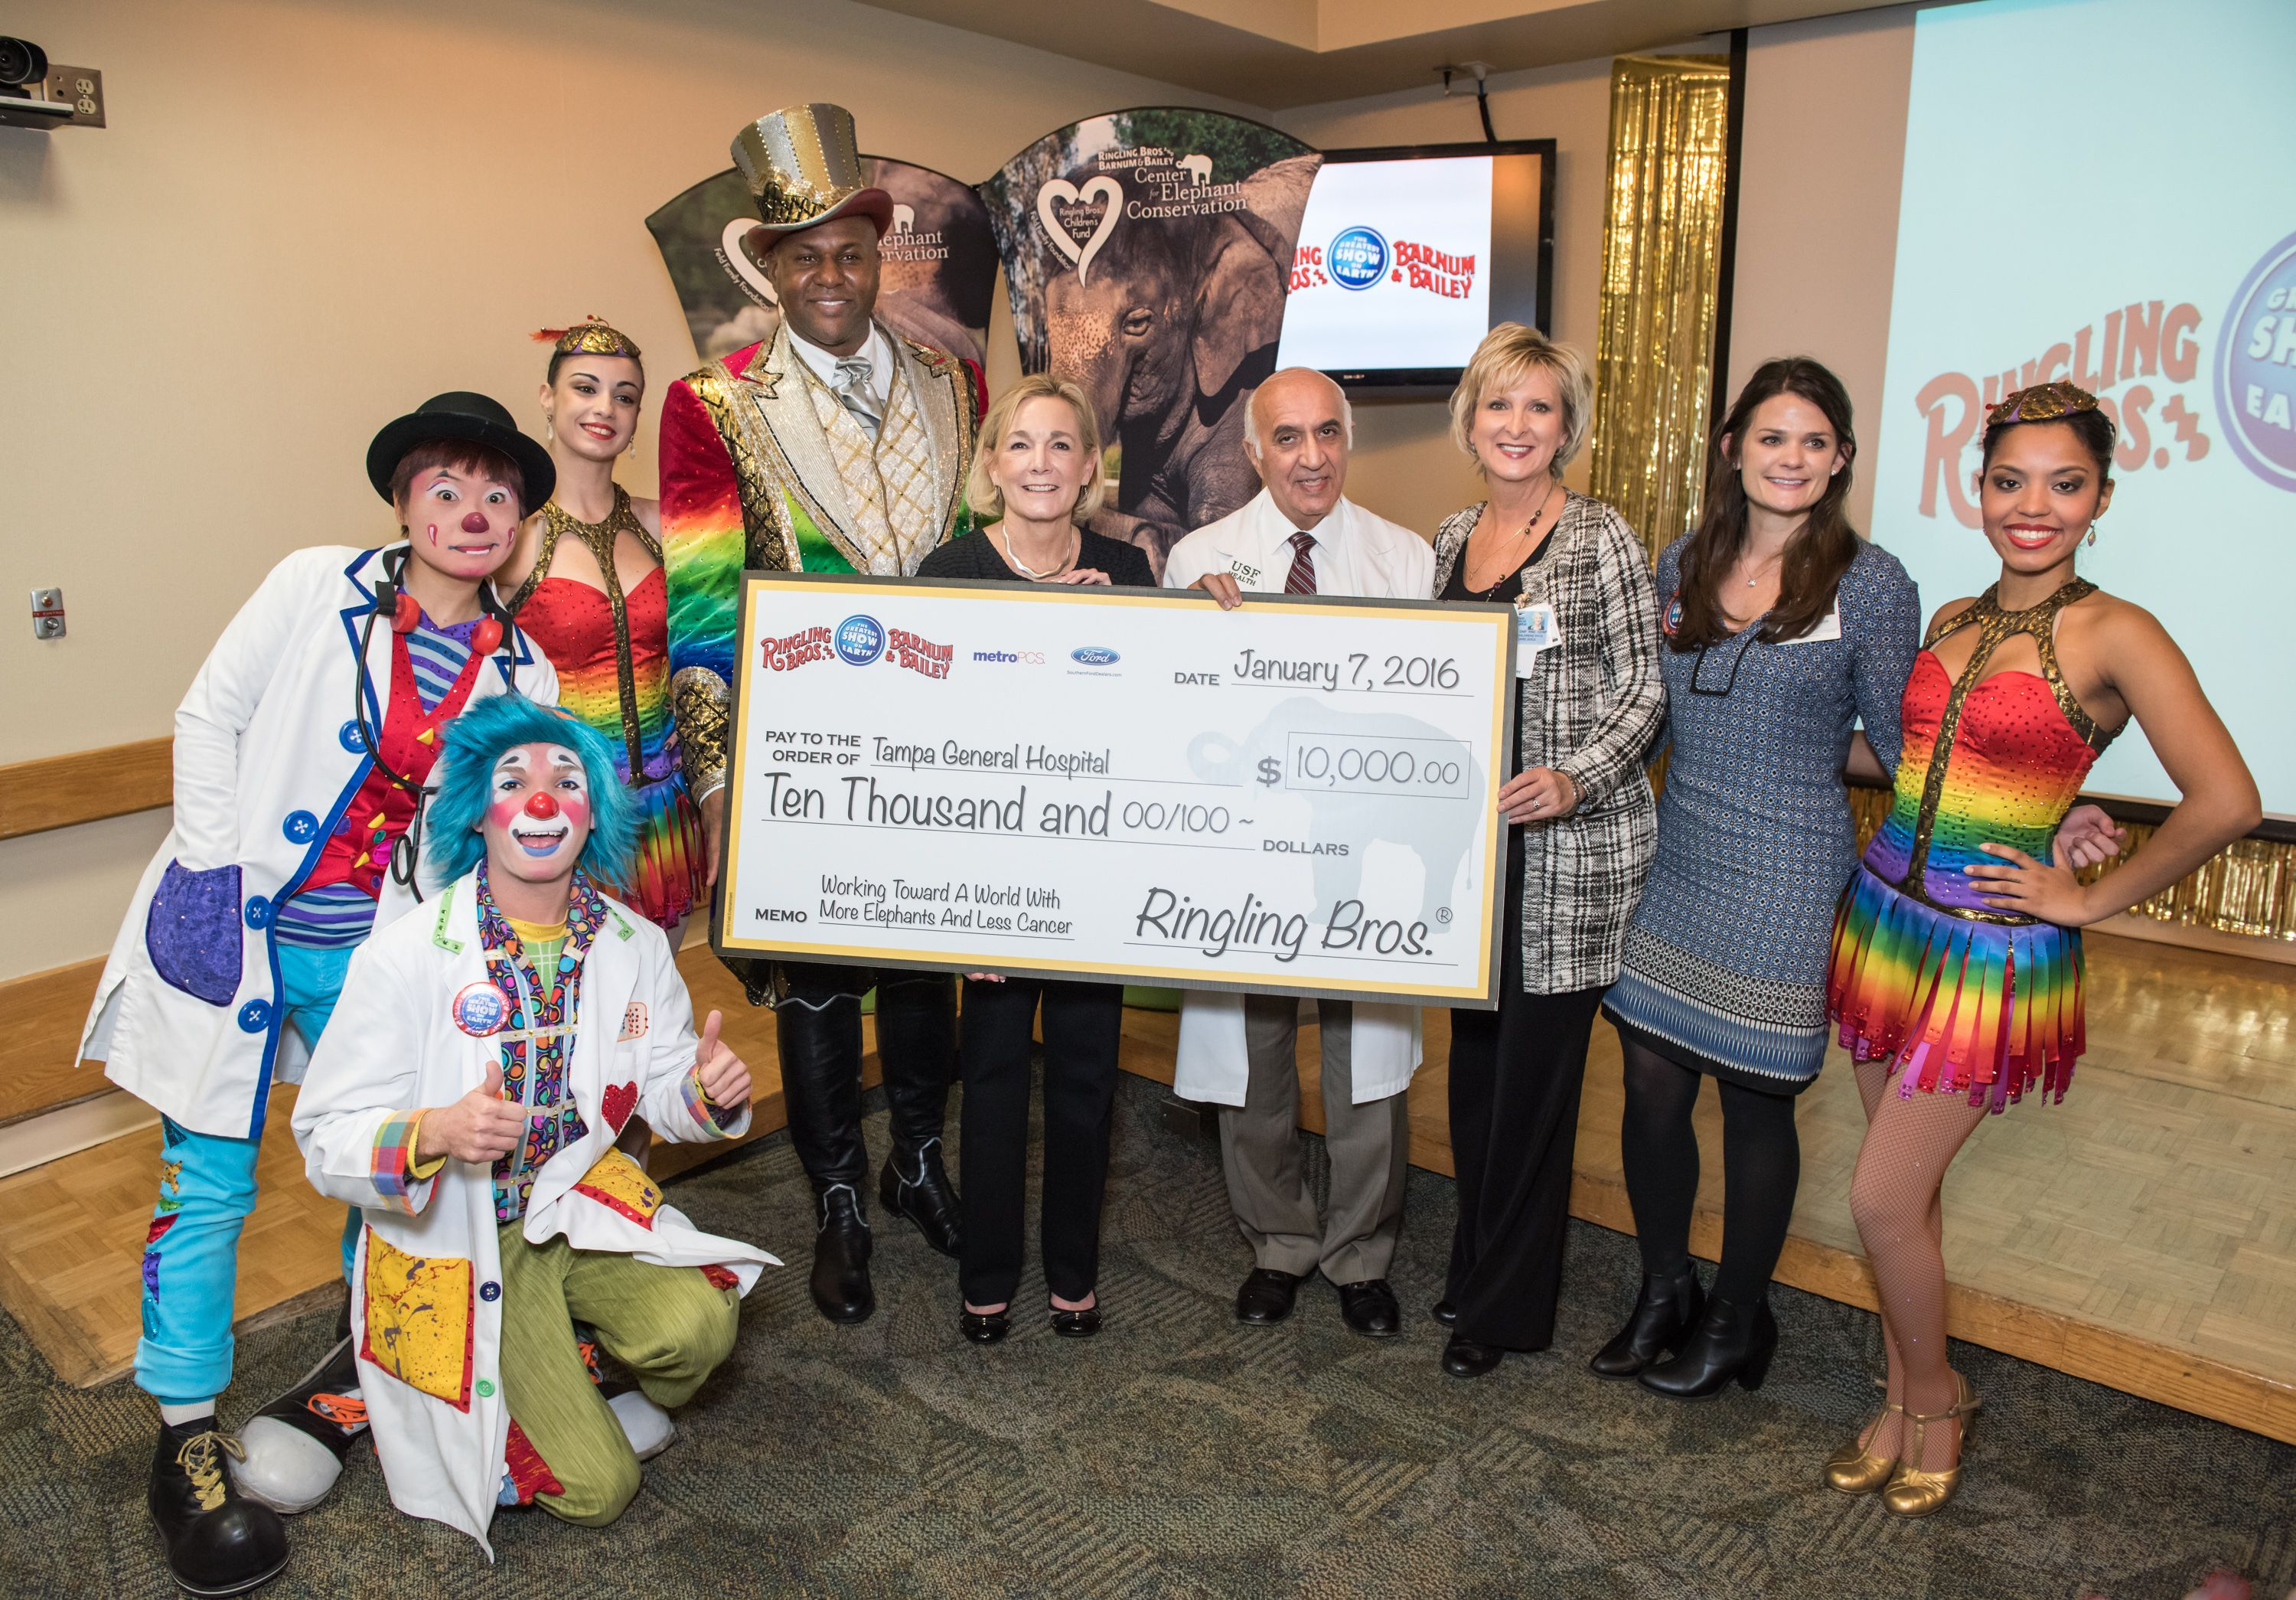 Ringling Brothers and Barnum and Bailey Circus visited children and patients at TGH, putting on a performance that featured clowns, dancers and acrobatics. They also donated $10,000 to the Tampa General Hospital Foundation!